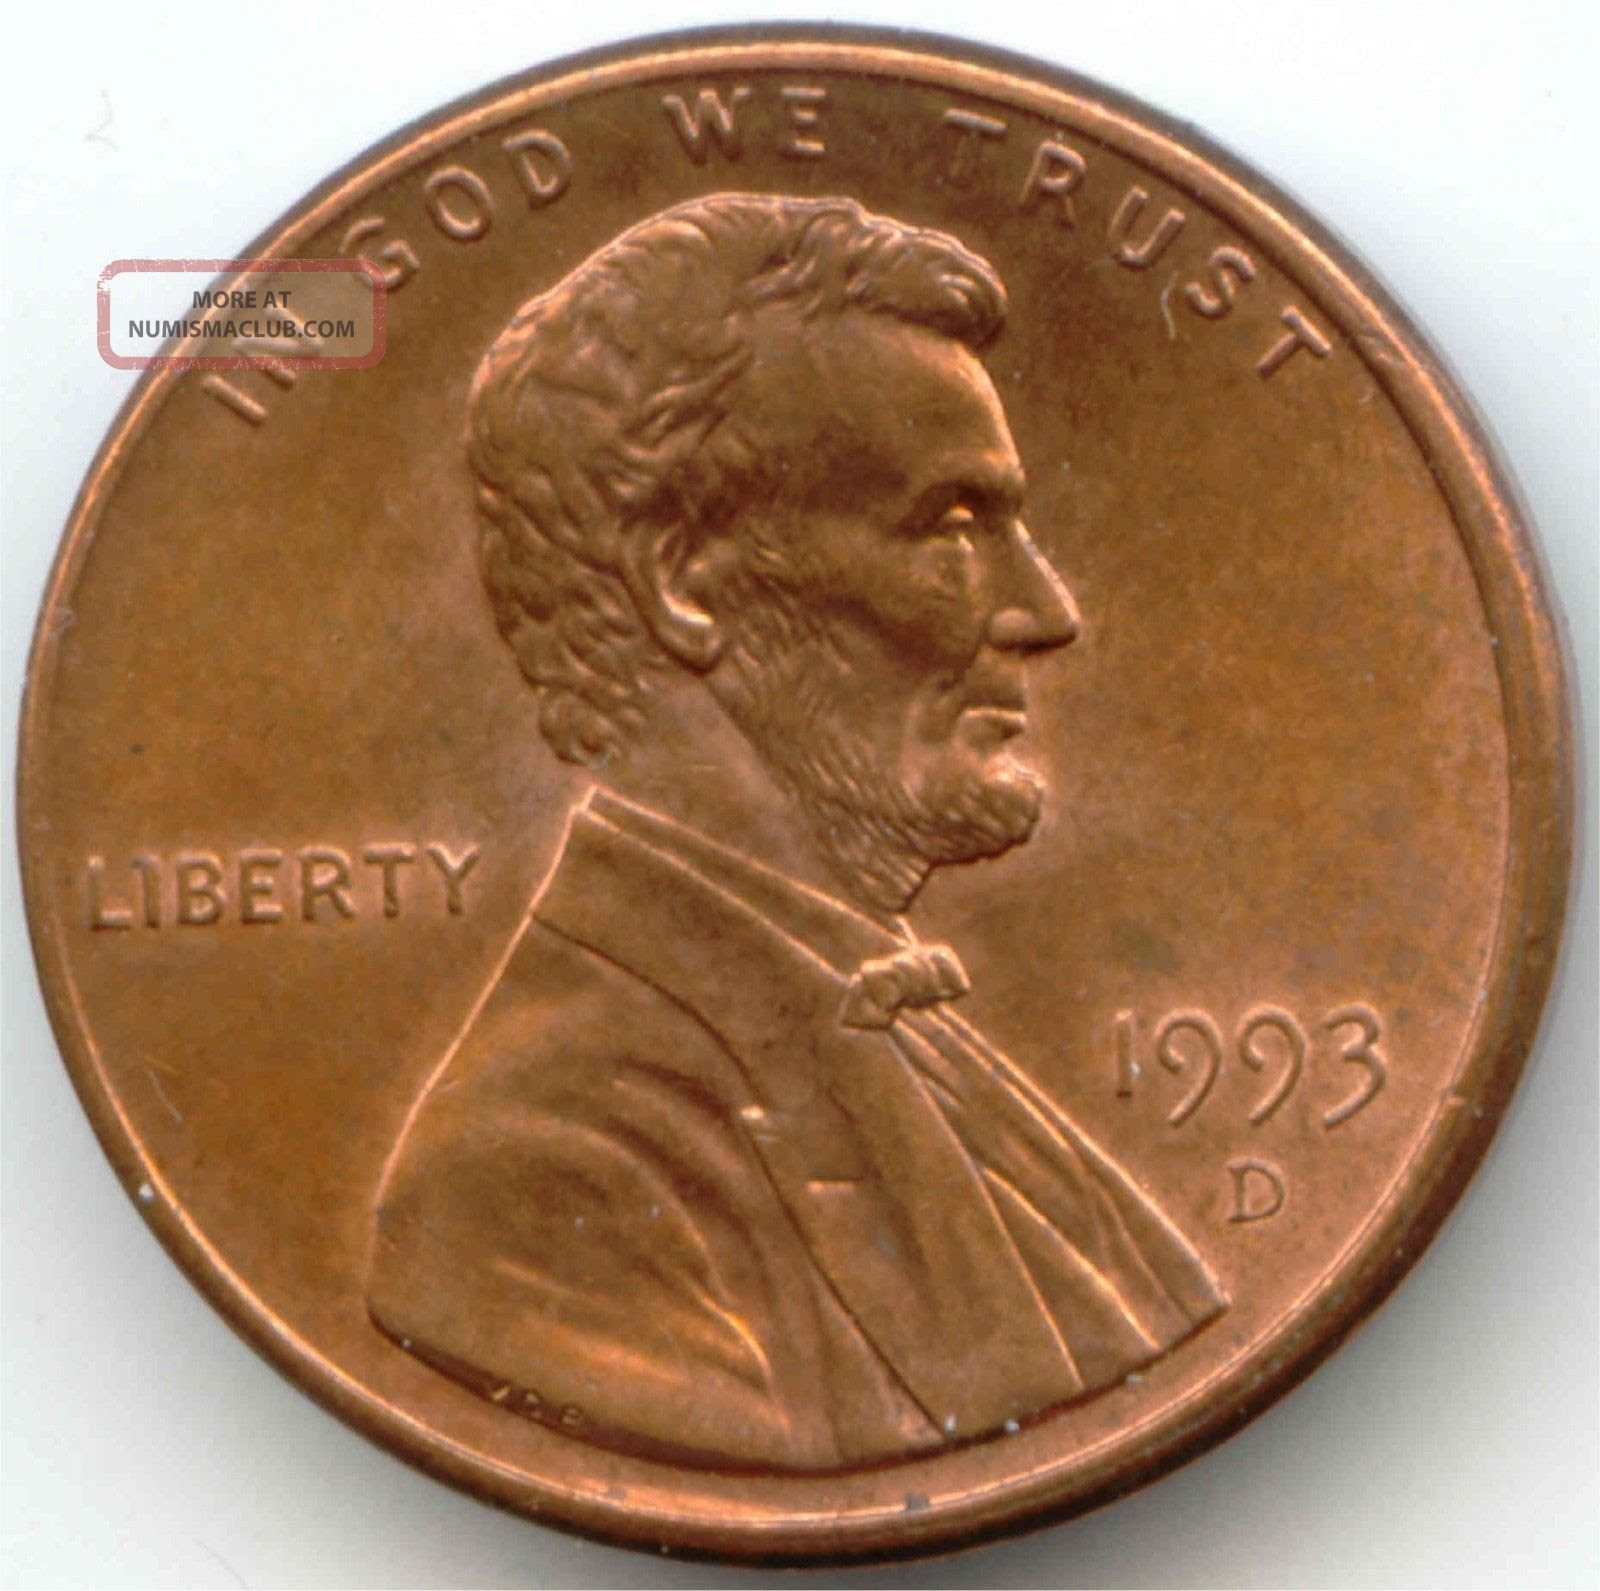 Usa 1993 D American 1 Cent Lincoln Memorial Penny Higher ...